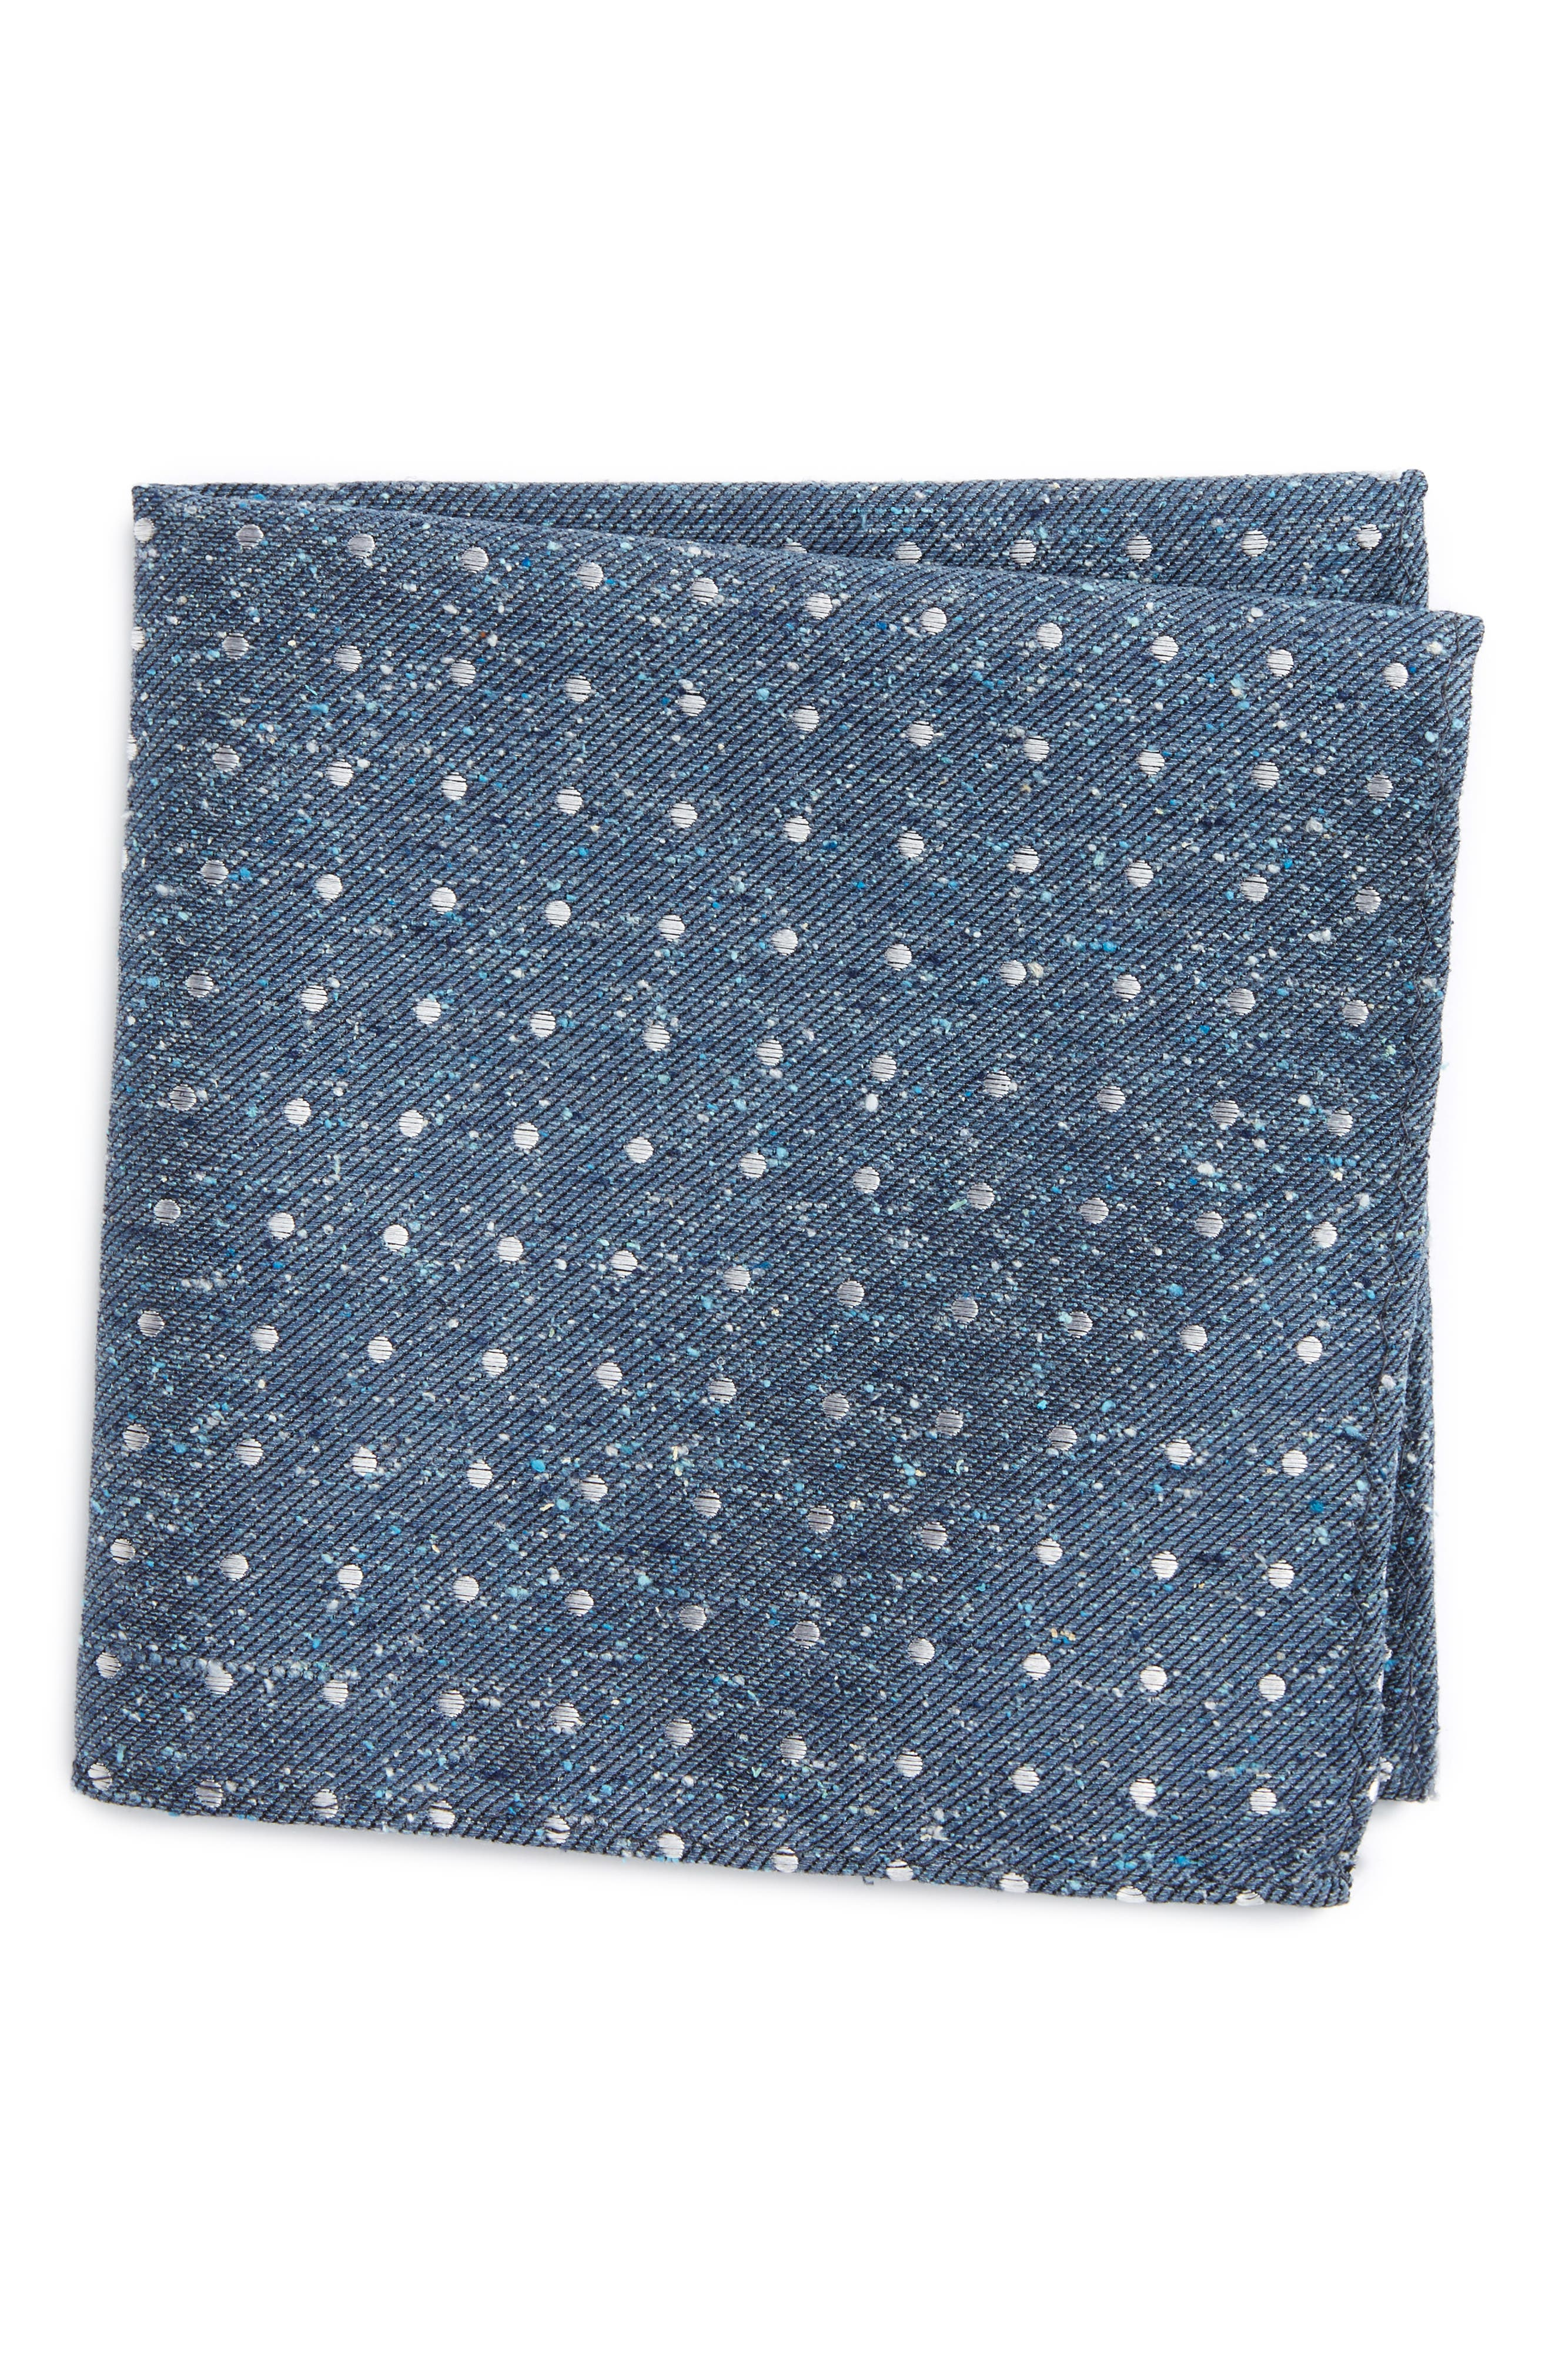 Alternate Image 1 Selected - The Tie Bar Knotted Dots Silk Pocket Square